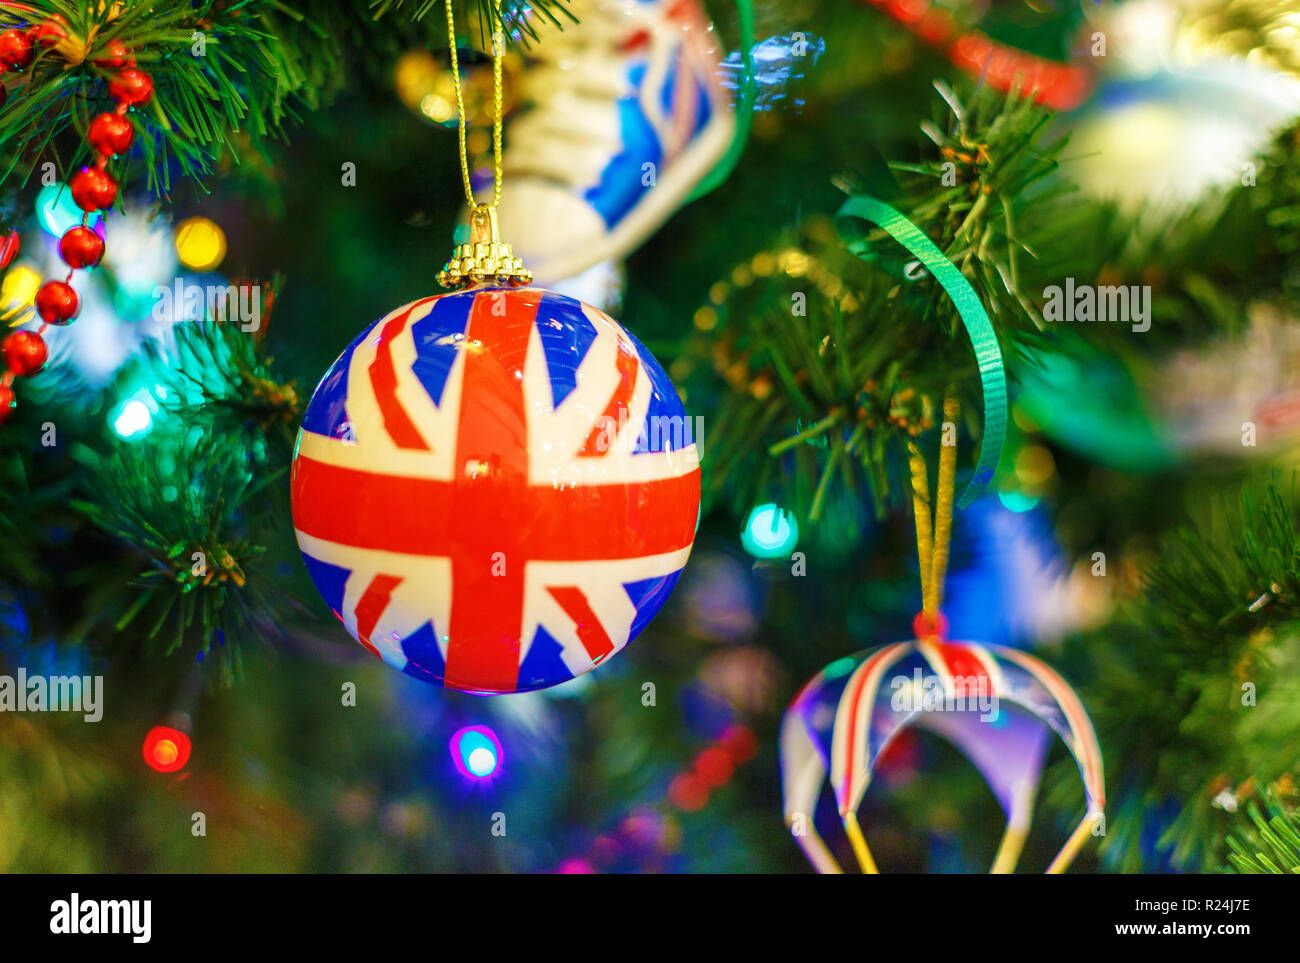 Christmas Tree With Christmas Toys In The Image Of The British Flag Concept New Year Celebration Background Stock Photo Alamy